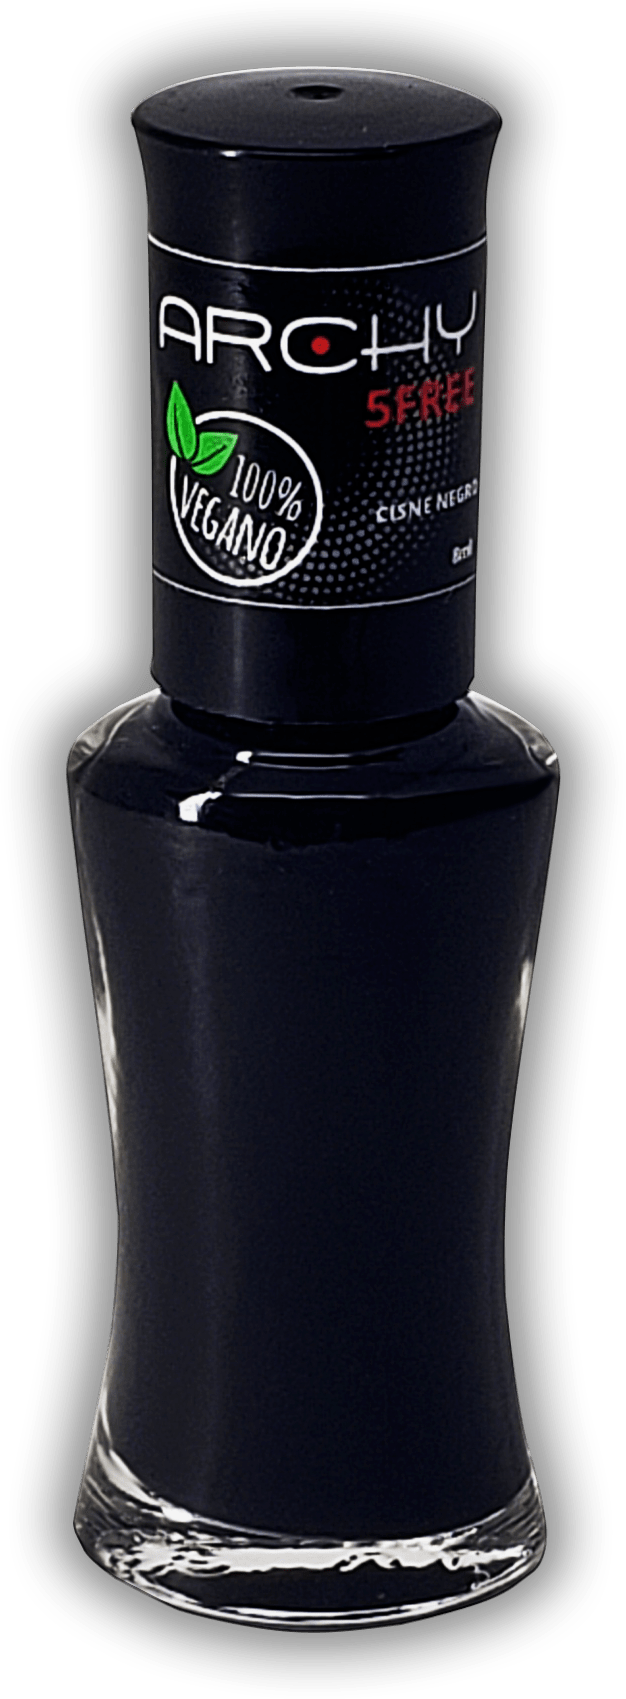 Esmalte Vegano 5 Free Cisne Negro - Archy Make Up